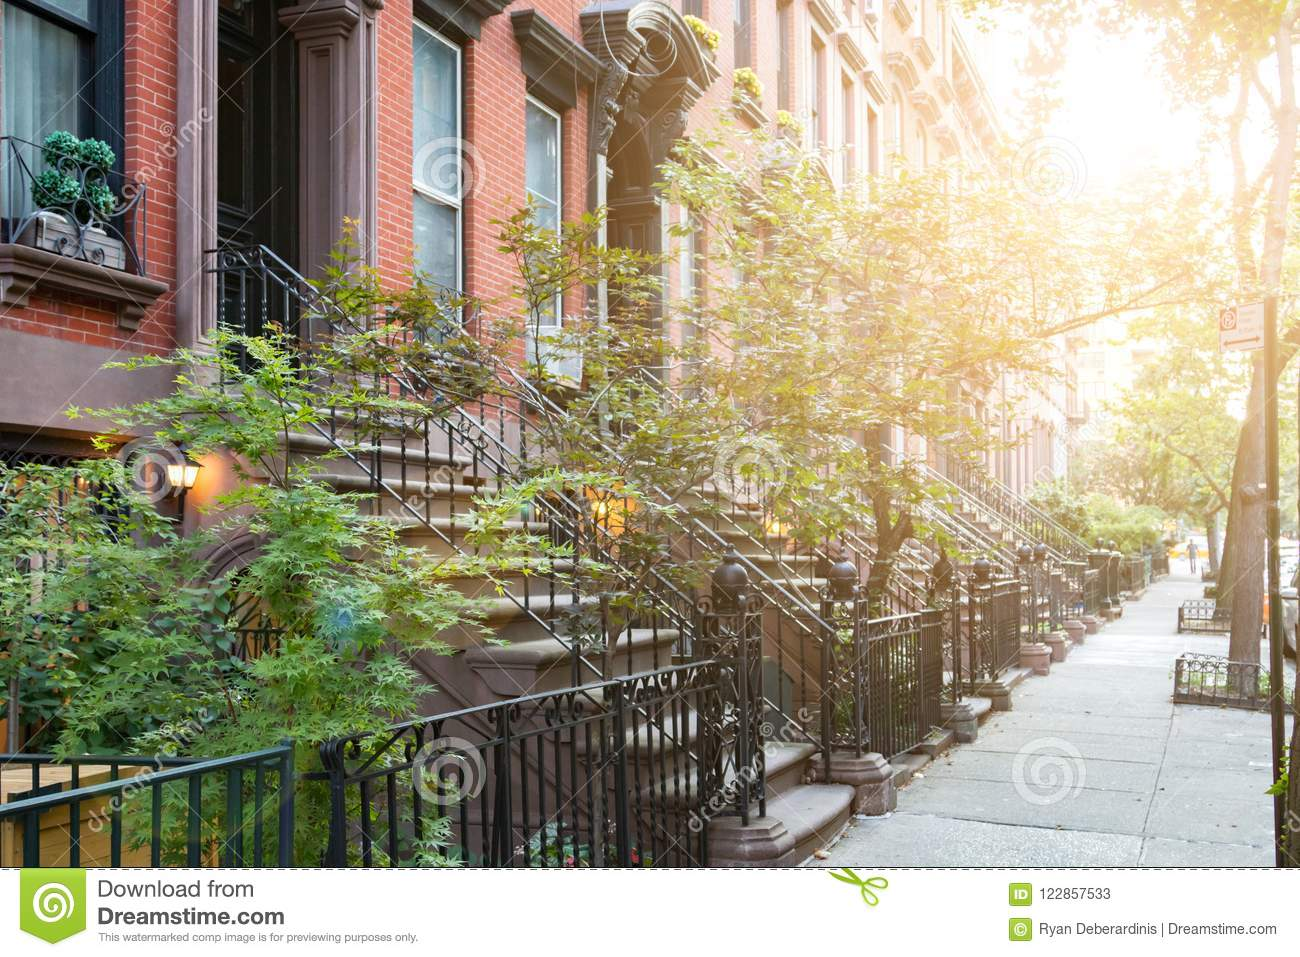 Sunlight shines on historic brownstone buildings in New York City